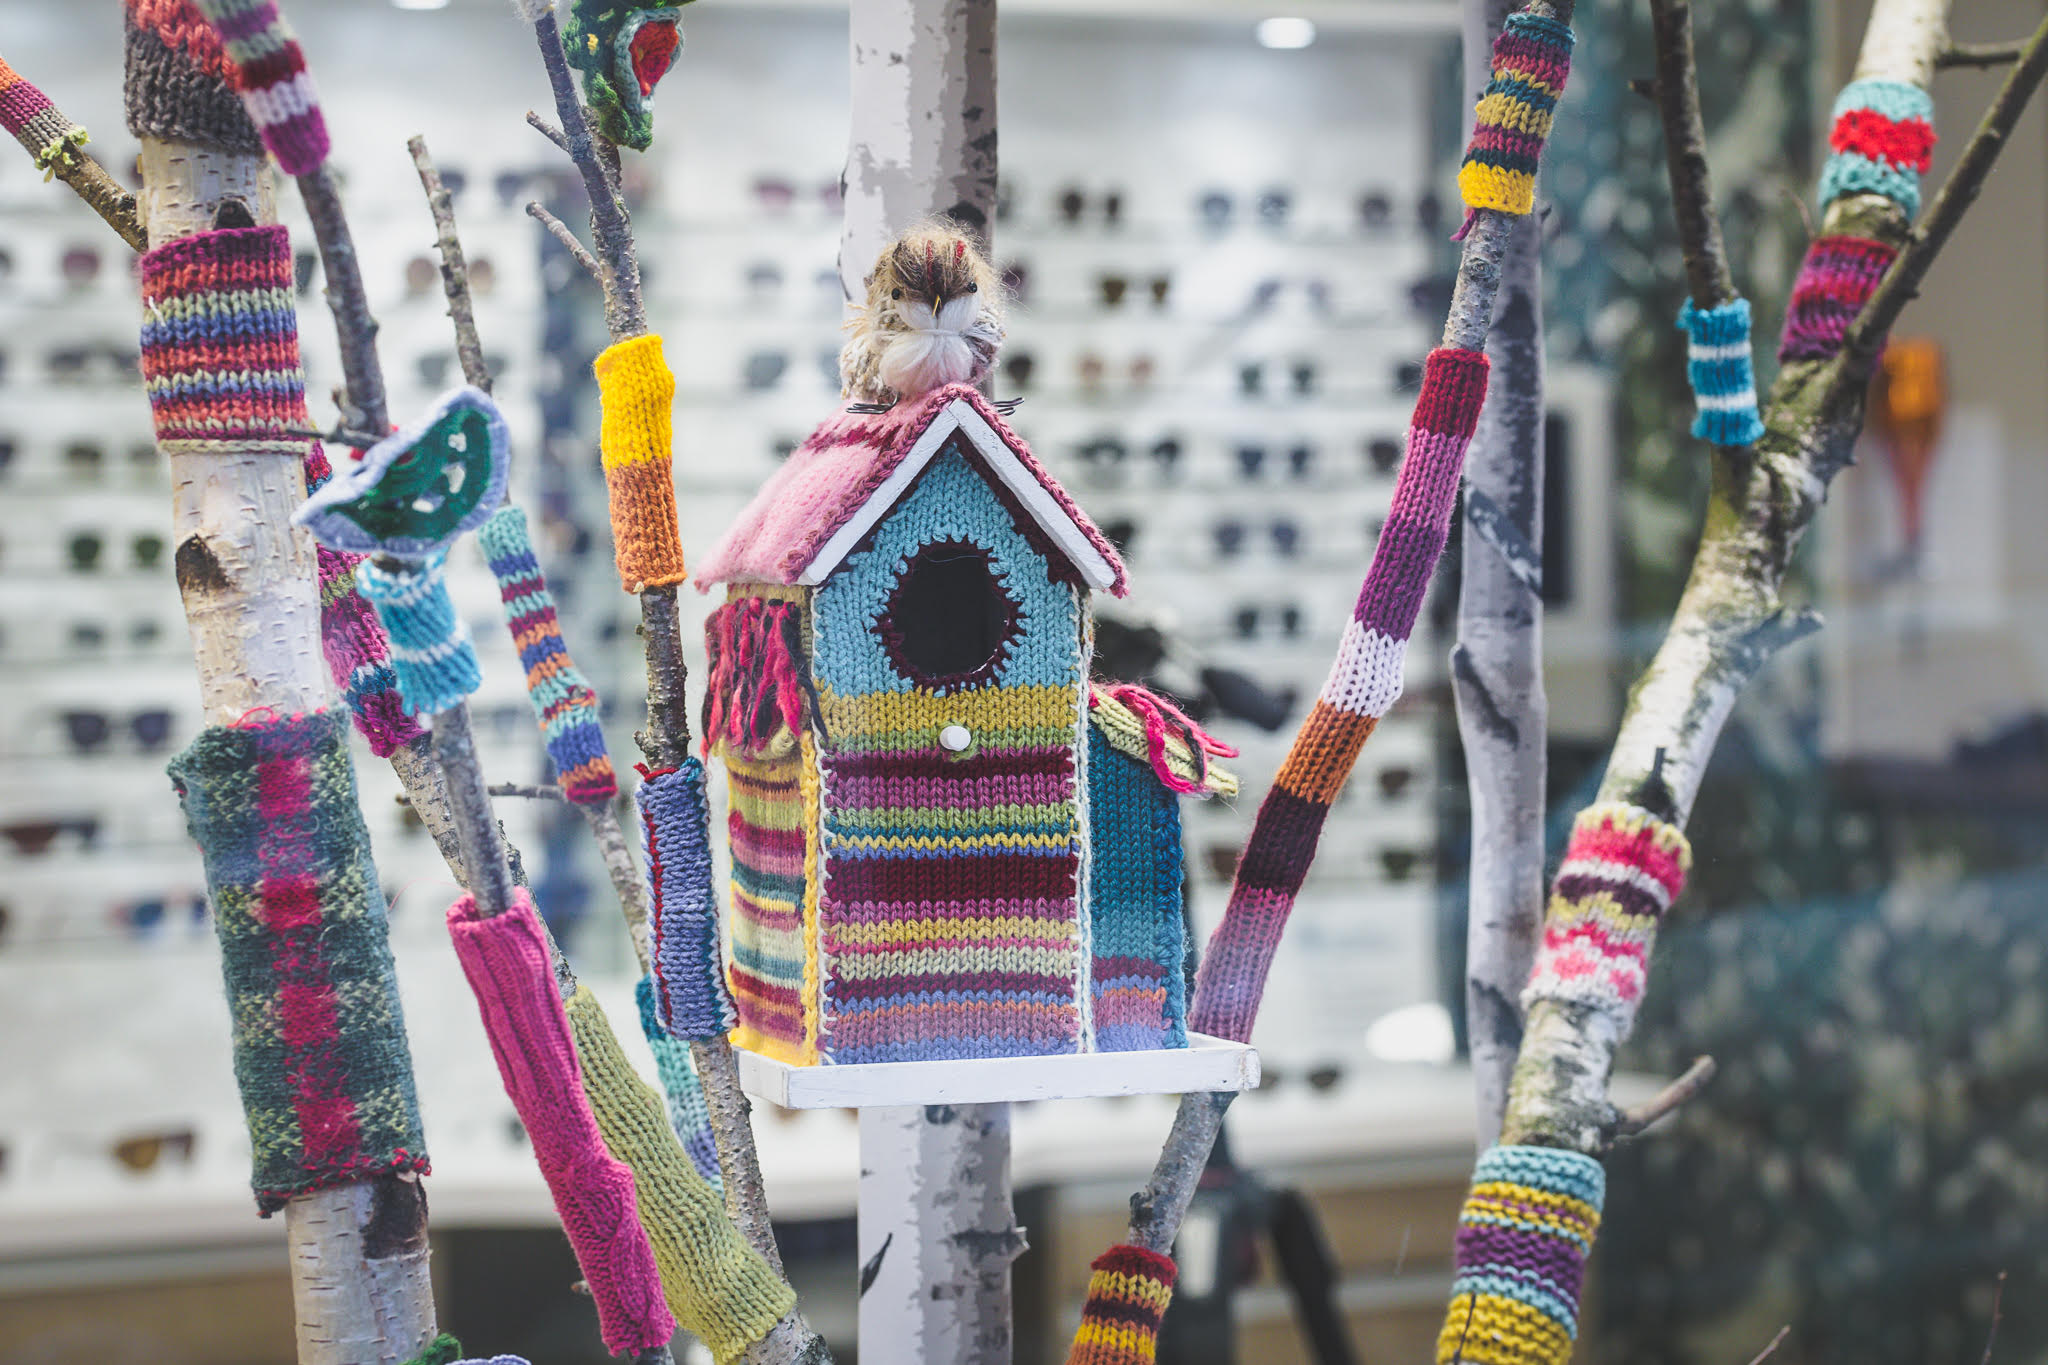 Cabane dans les branches good-Yarn Bombing-la-decotheque-catherine-Cardin